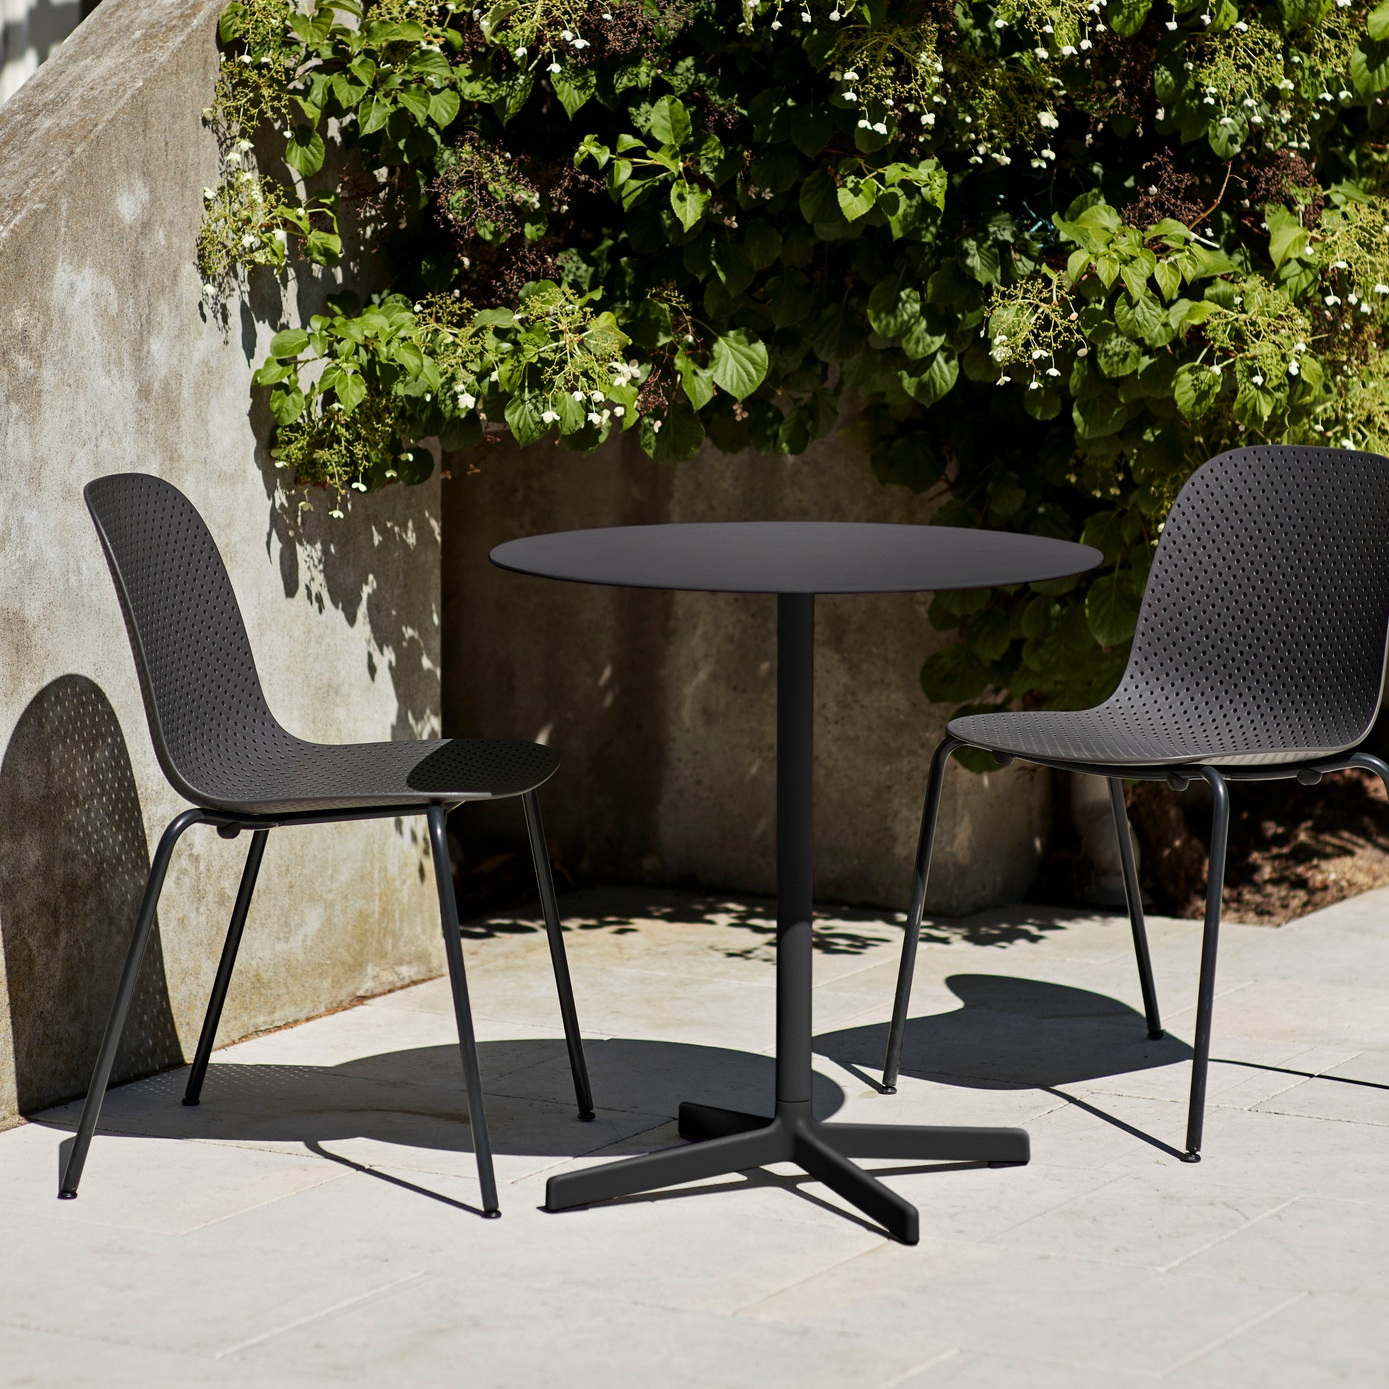 13Eighty+soft+black_Neu+Table+Round+charcoal.jpg